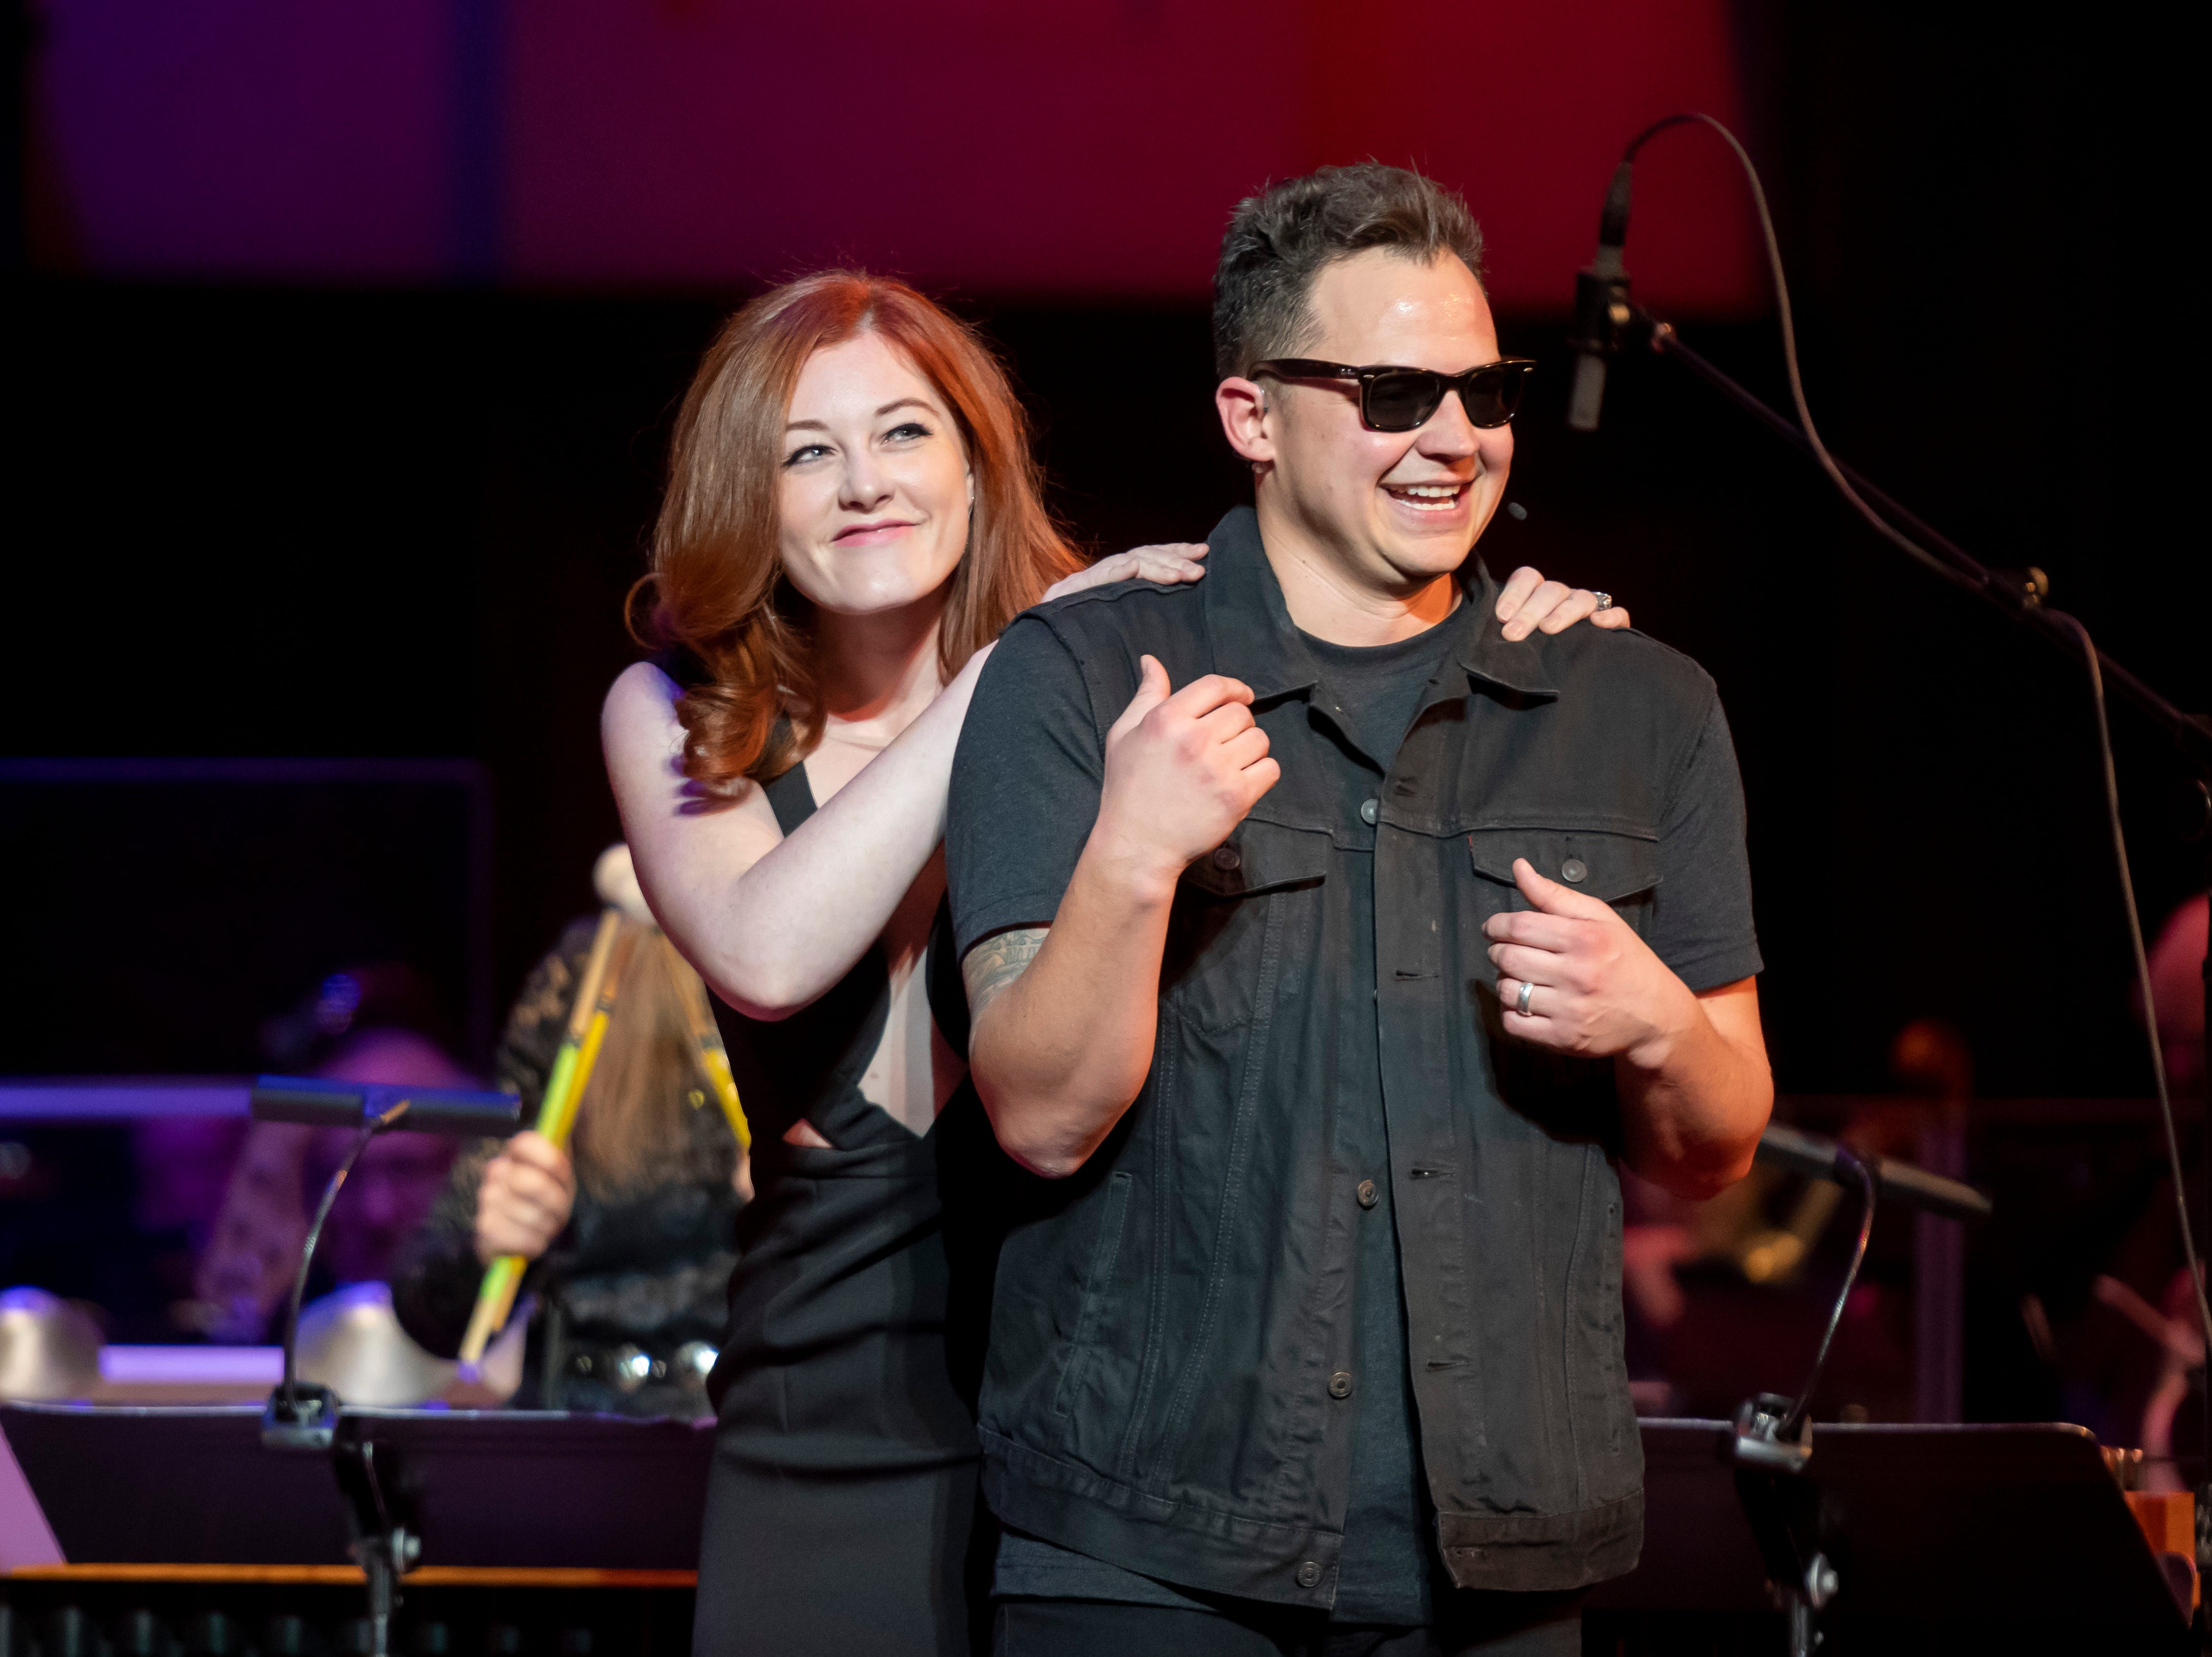 Musician Mandy Harvey, left, joins Sean Forbes on stage.